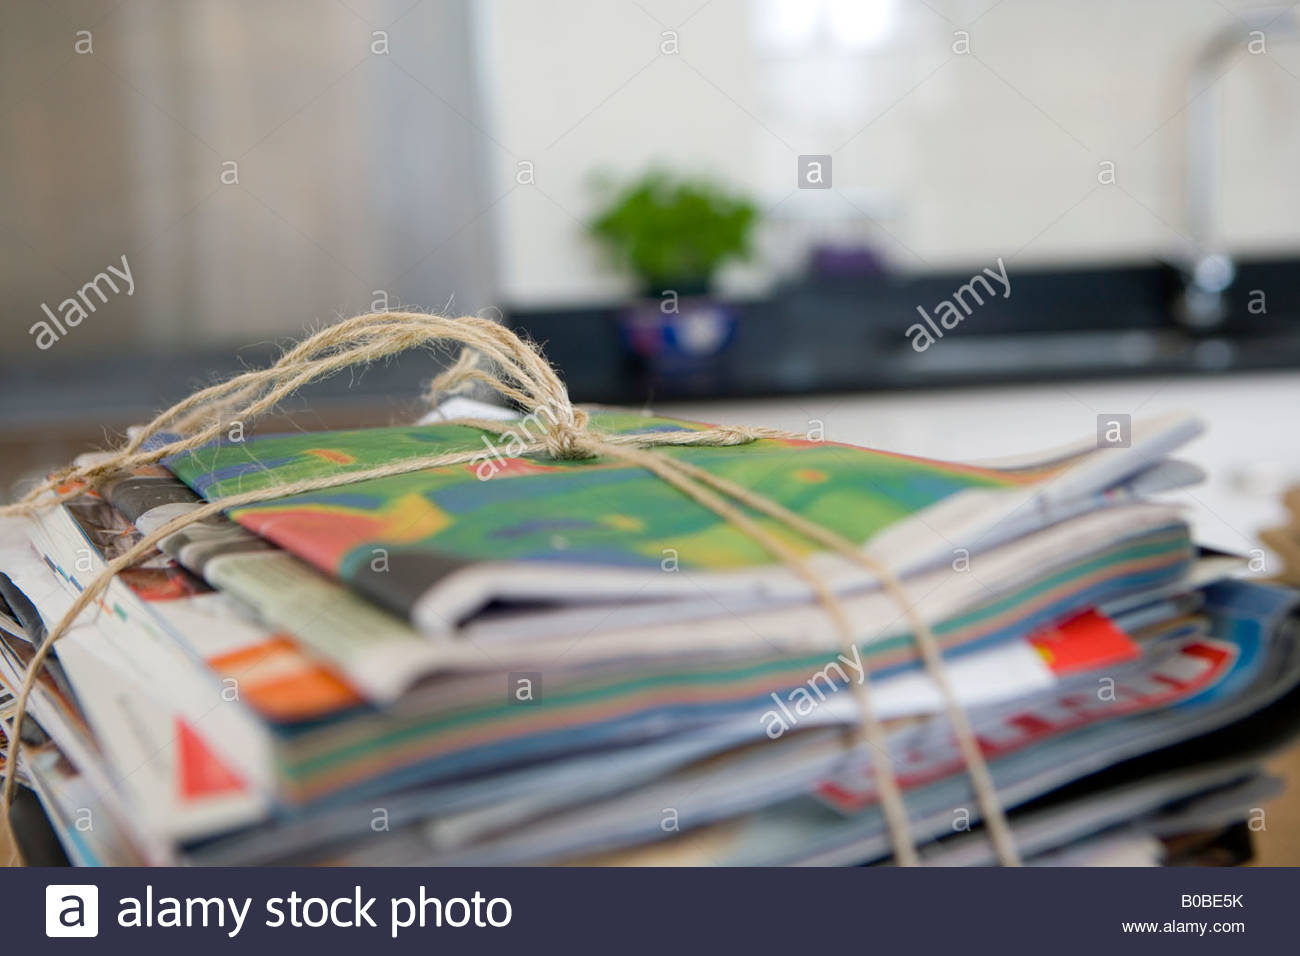 Bundle of newspapers tied with string, close-up - Stock Image